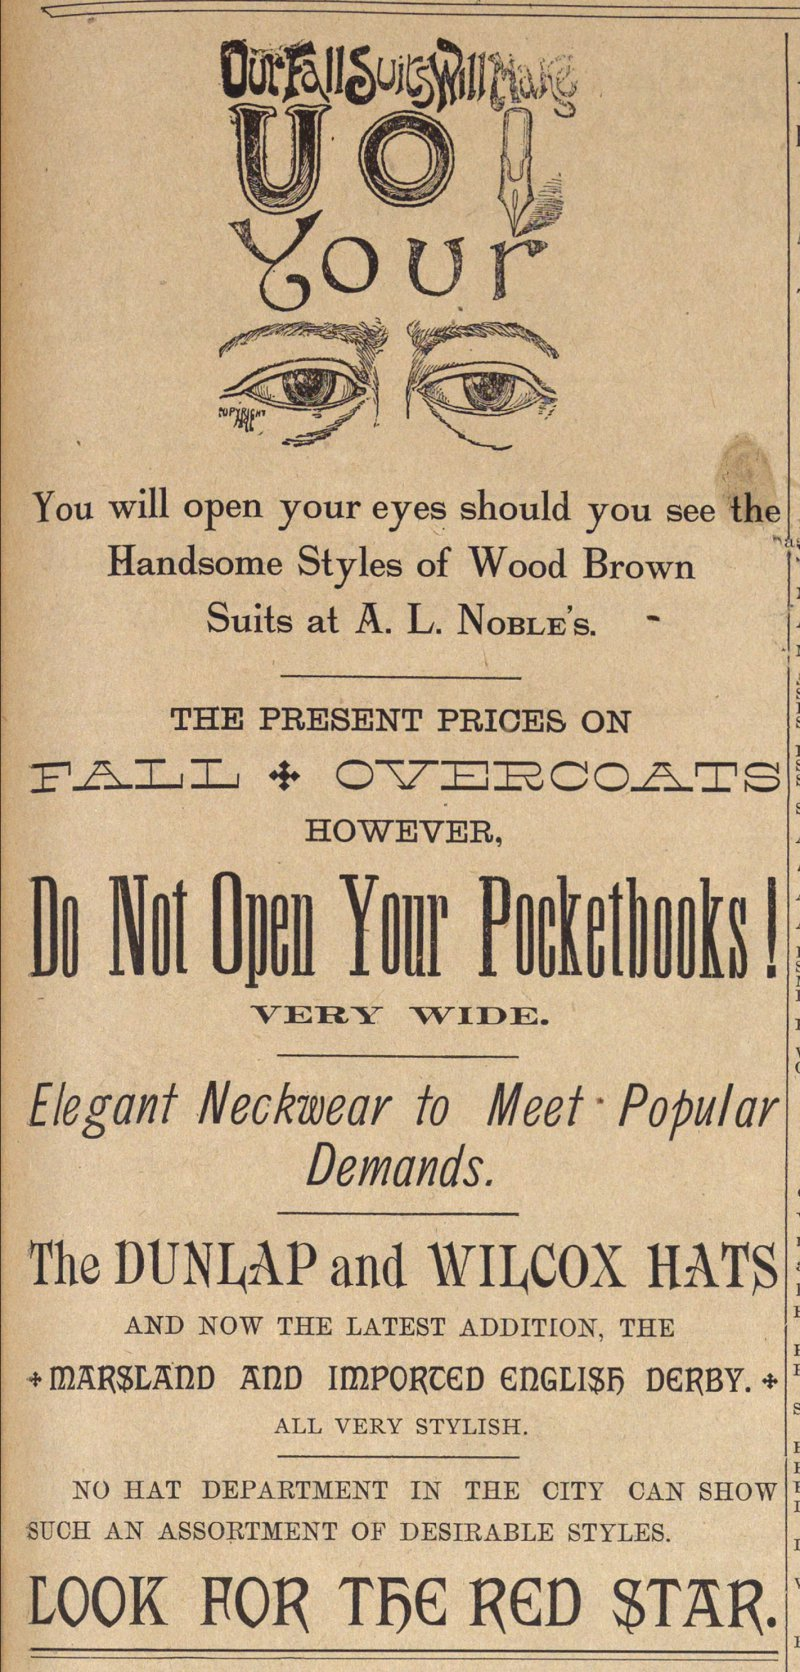 Do Not Open Your Pocketbooks! image